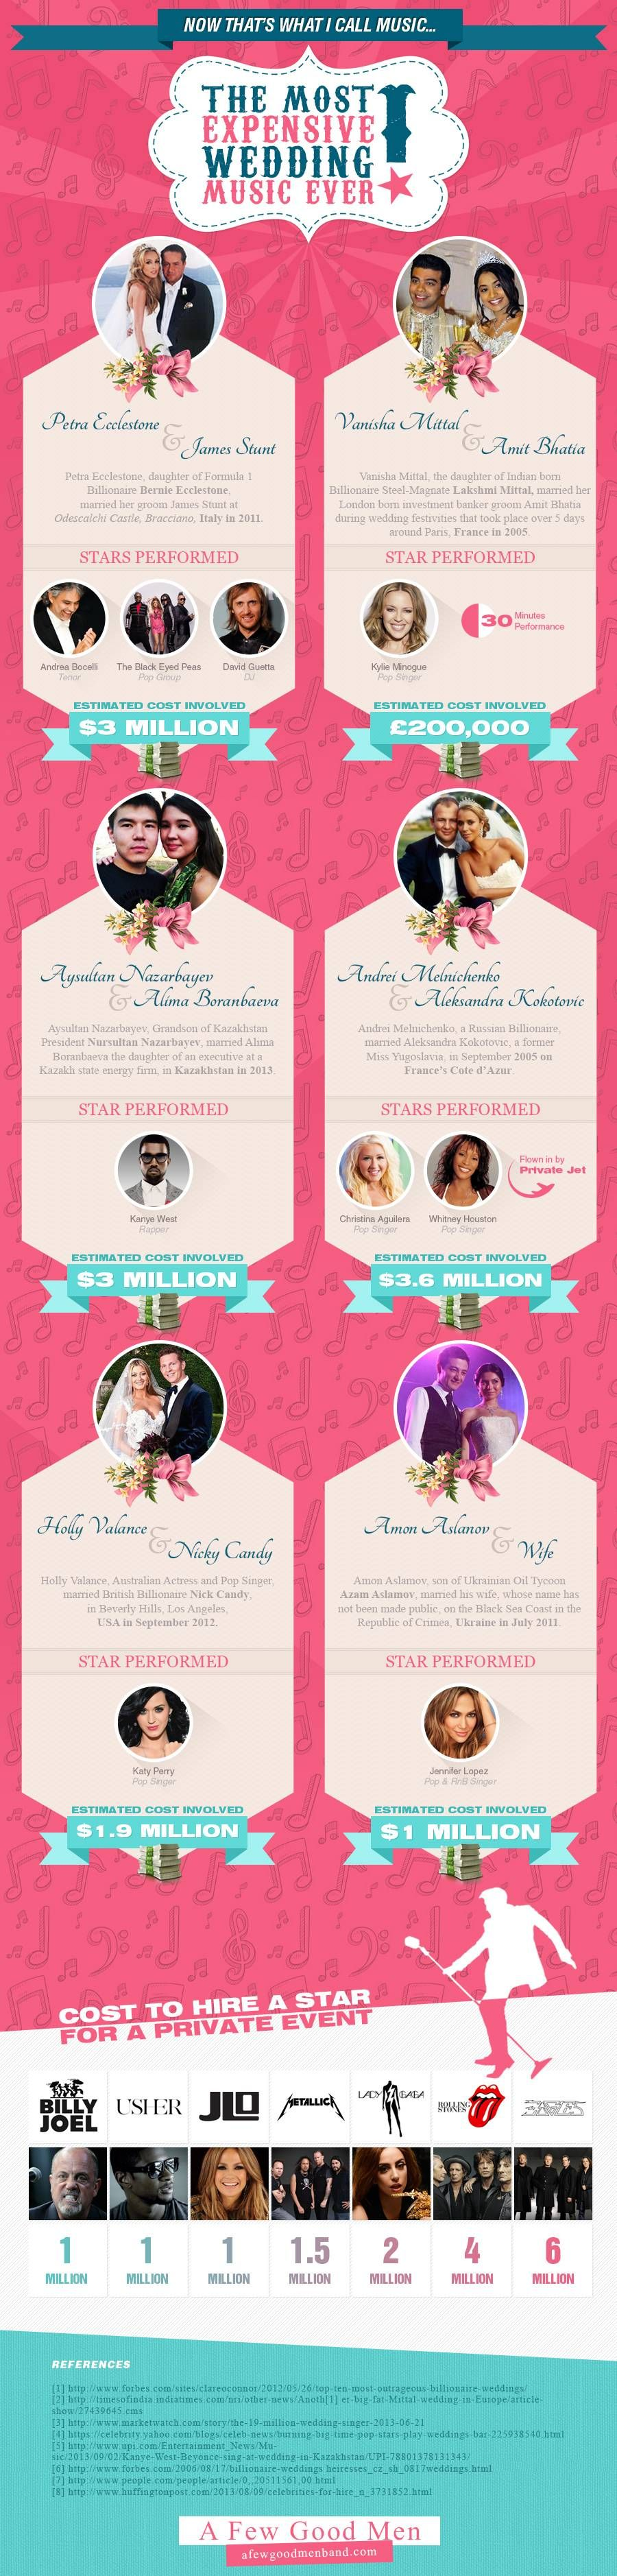 The Most Expensive Wedding Music Ever #infographic | Wedding music ...